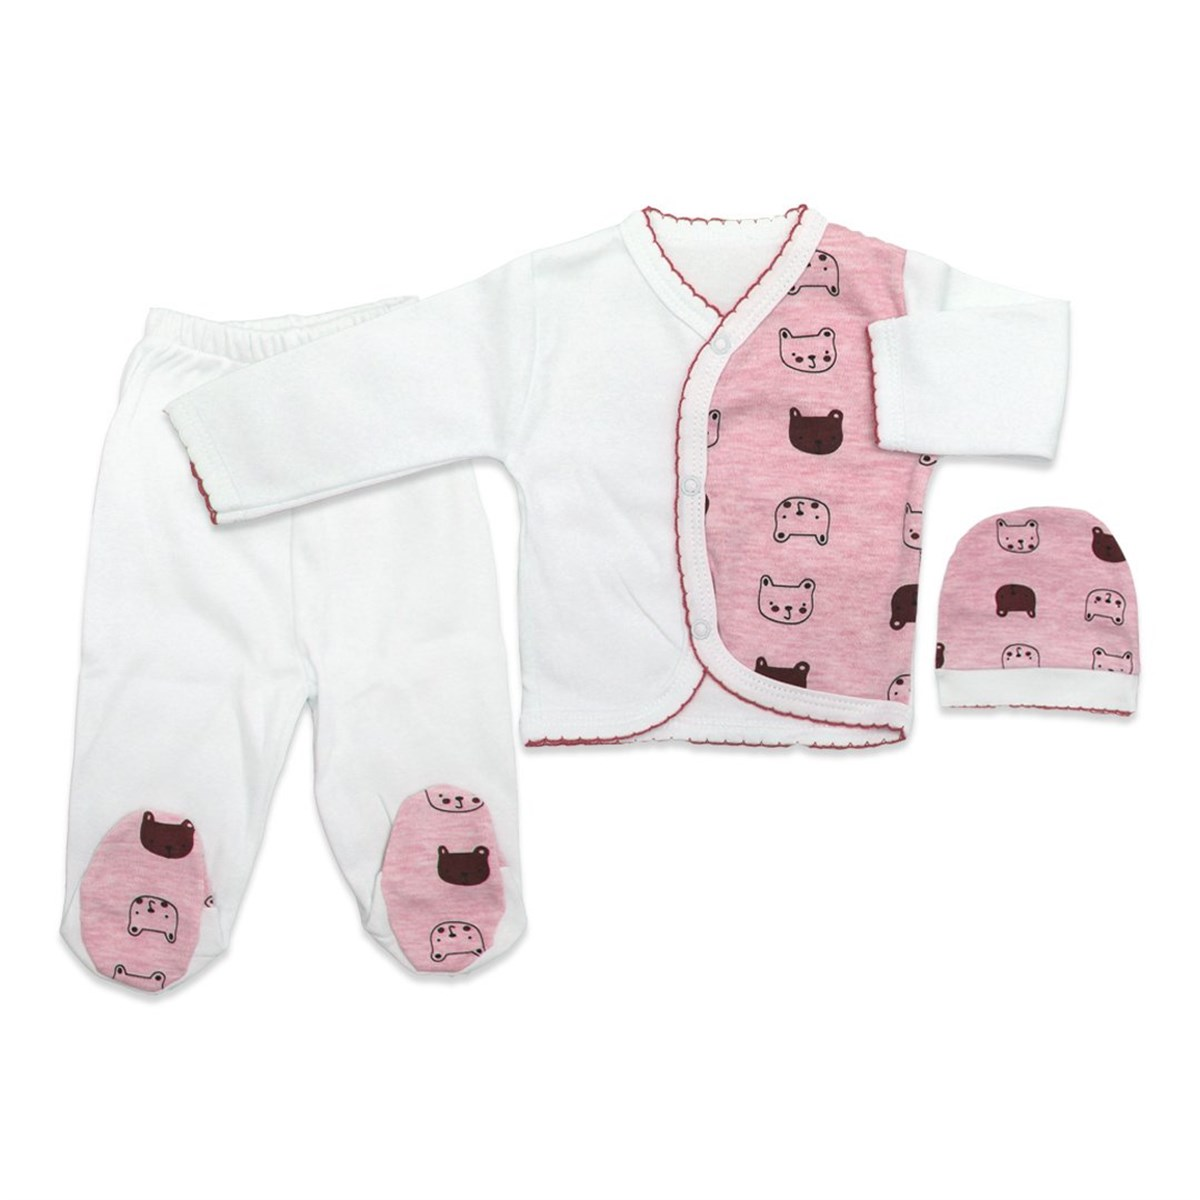 New Born Baby's Printed White Pink Snap Crotch Bodysuit Set- 3 Pieces